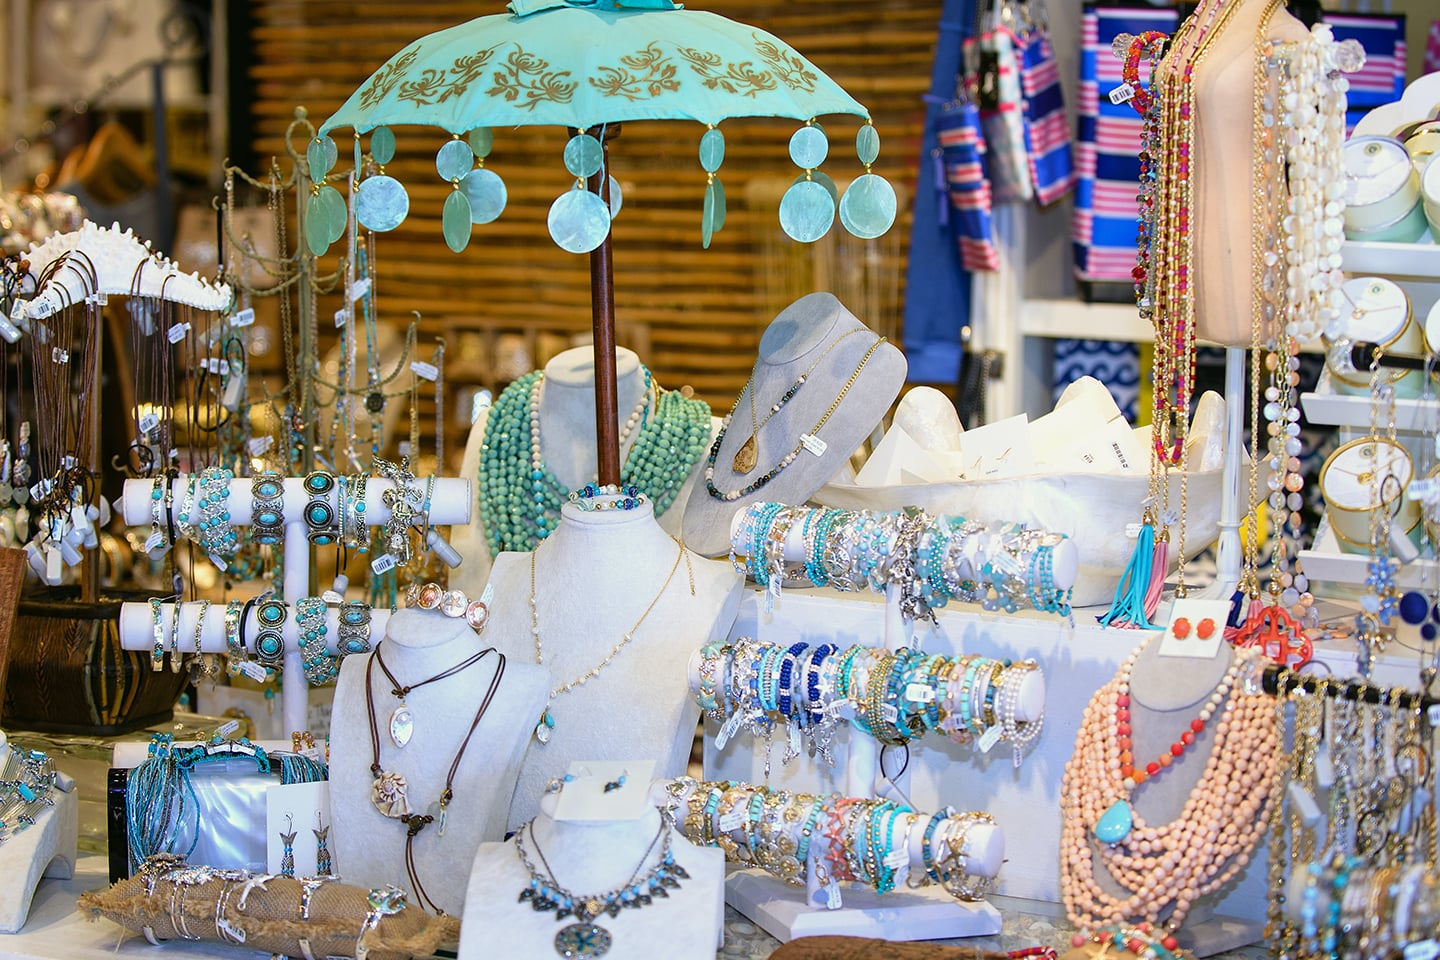 Jewelry, Fashion and so much more at Willy Nilly Trading Company